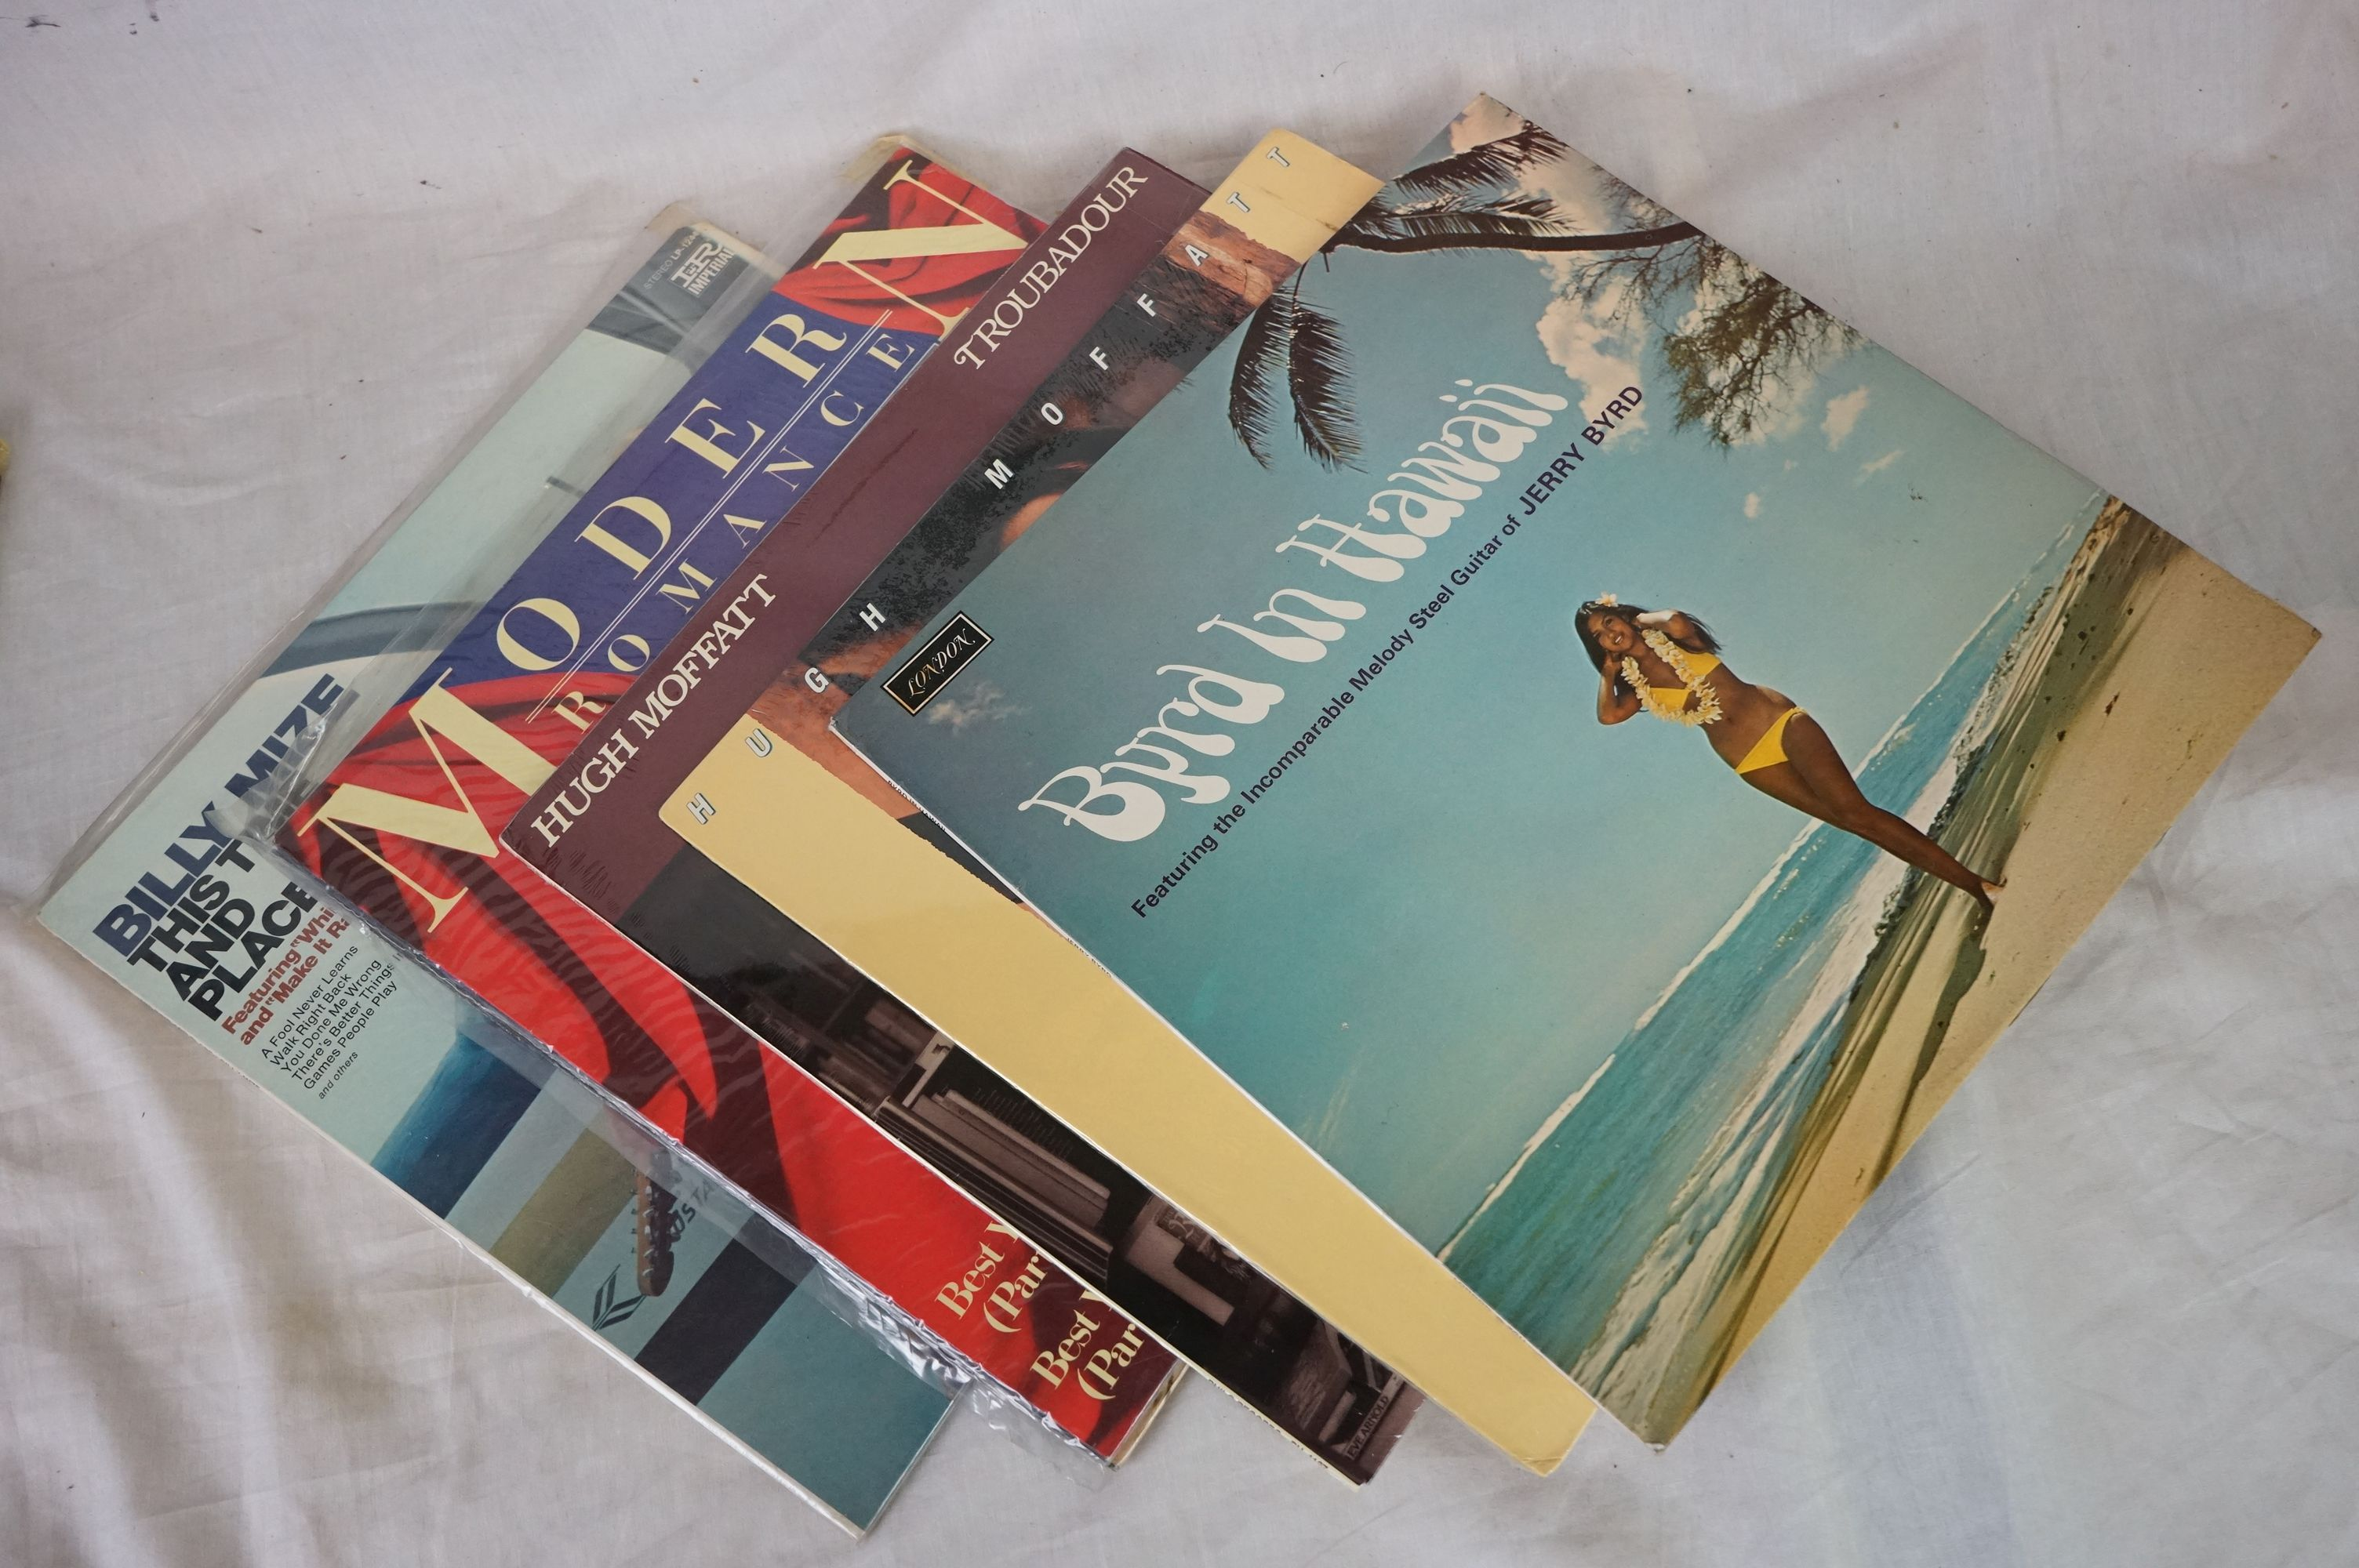 Vinyl - Over 300 LPs to include Country, MOR etc, sleeves and vinyl vg+ (three boxes) - Image 4 of 4